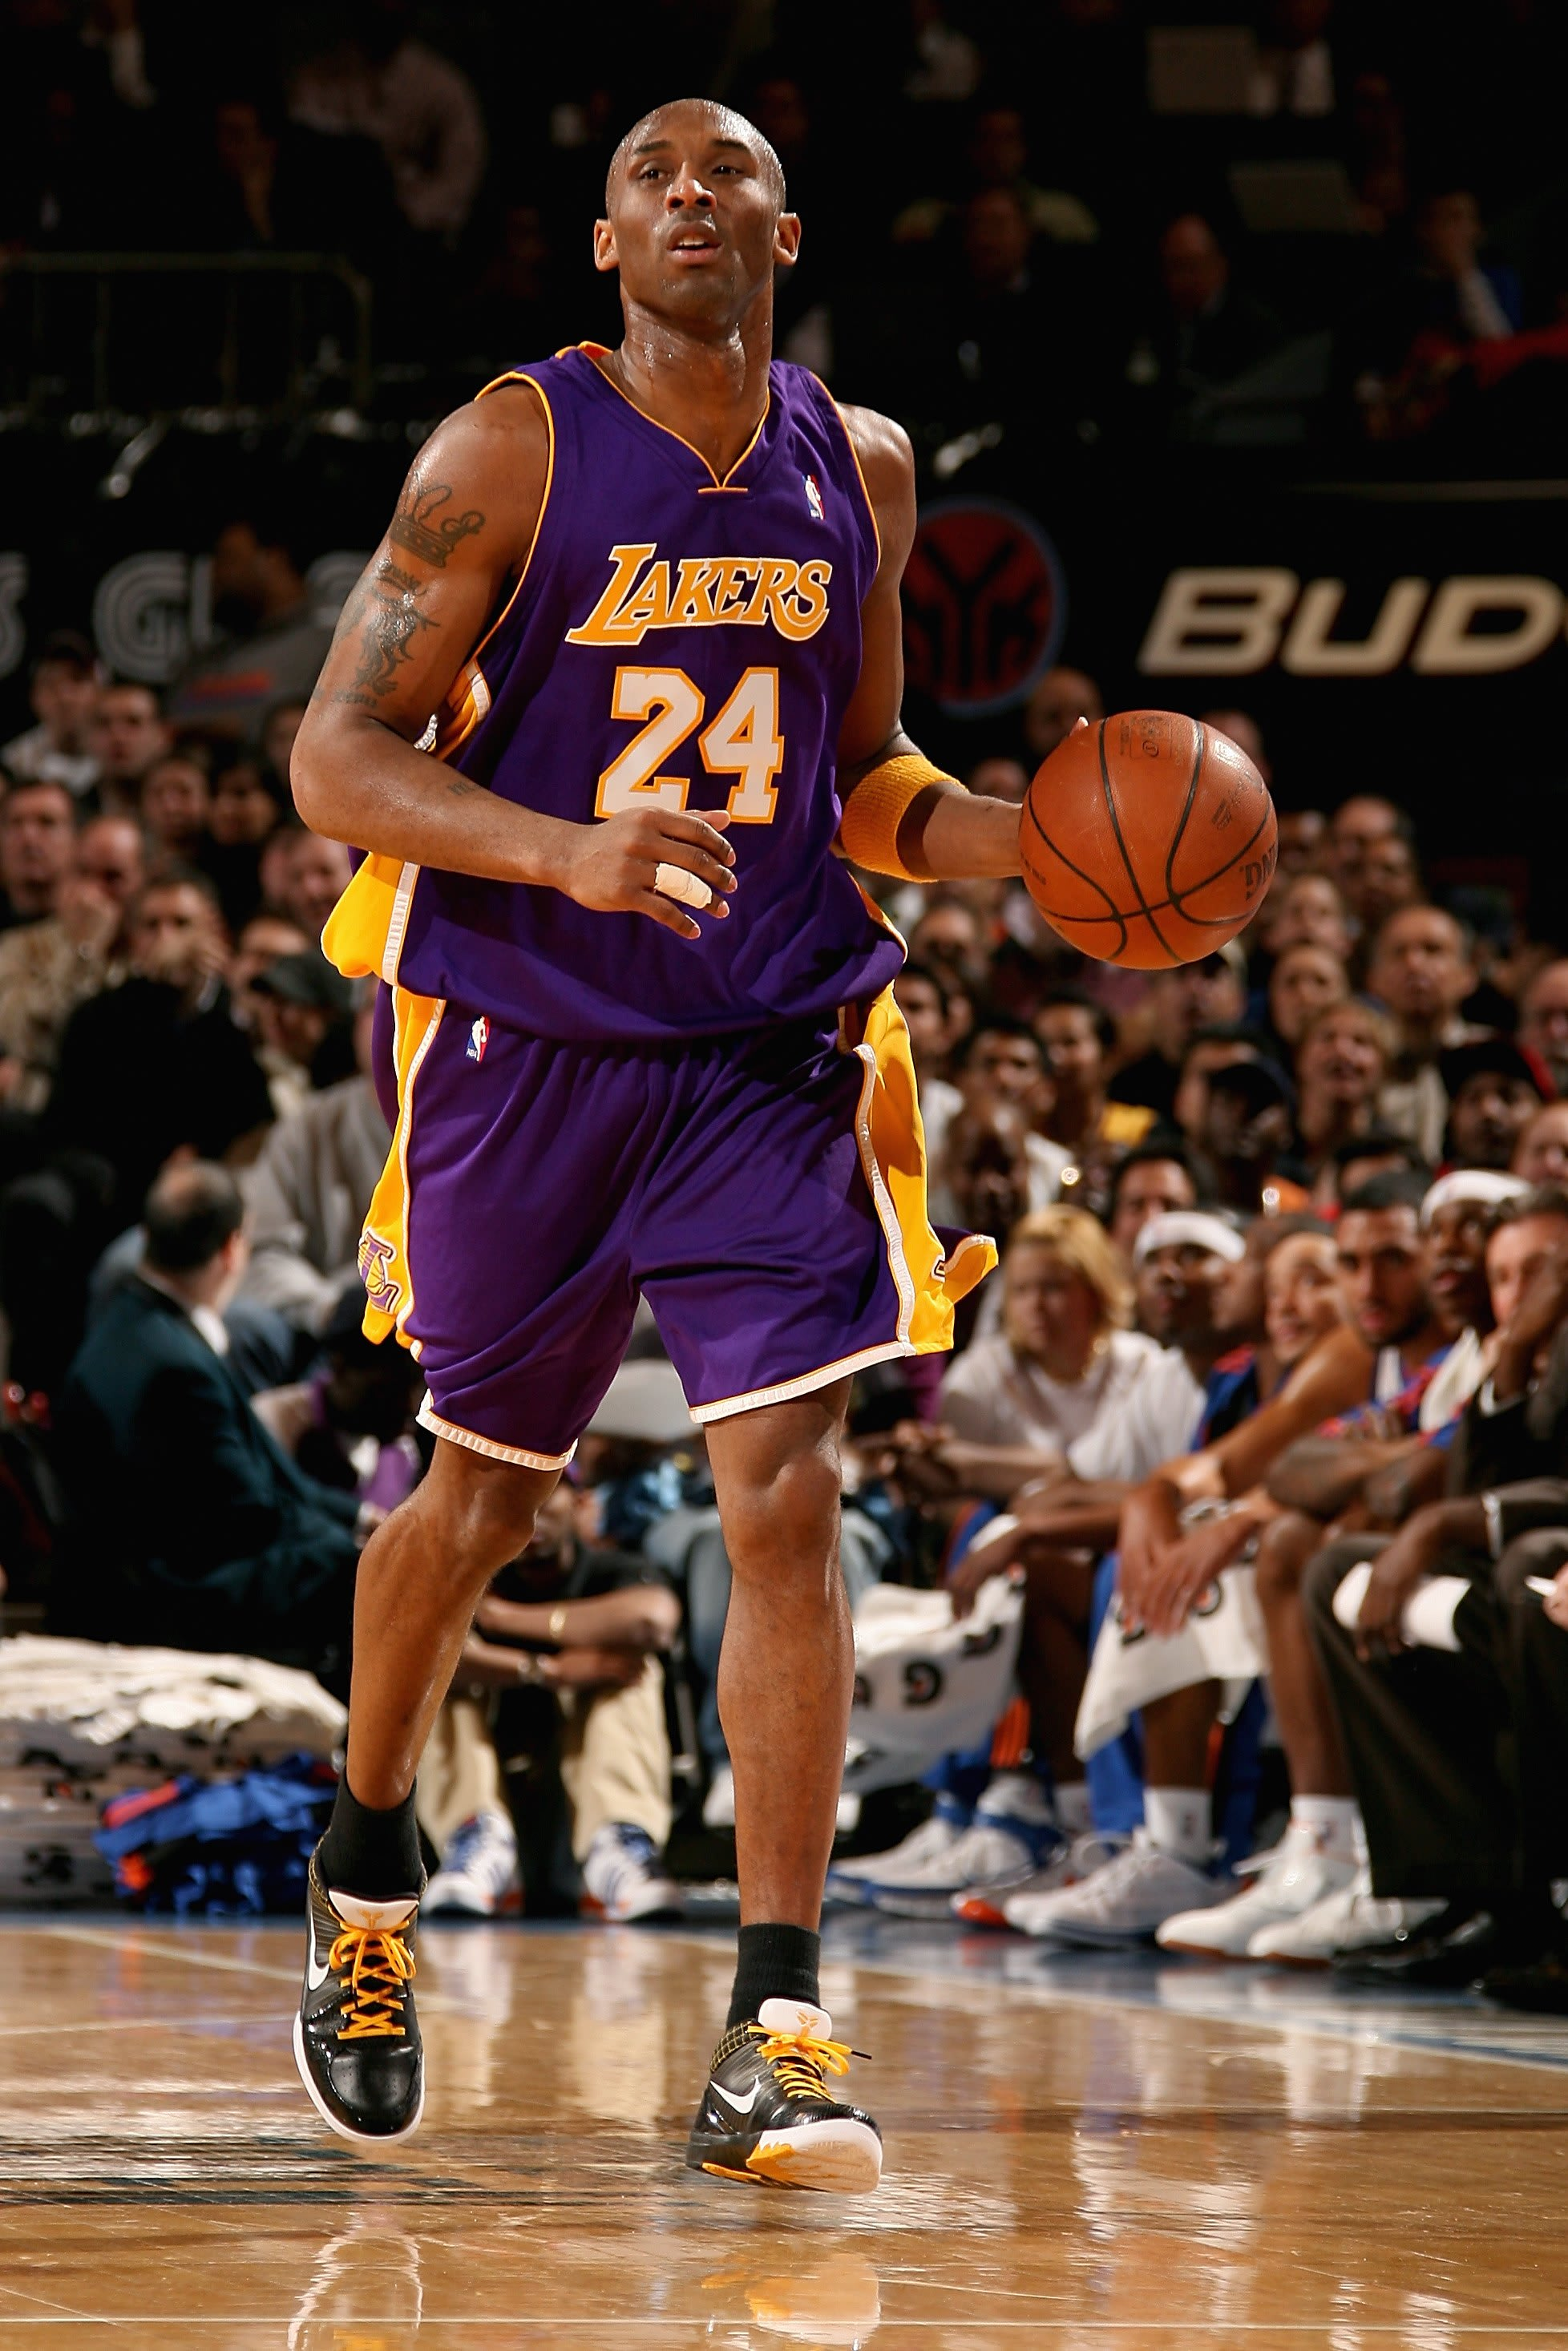 Kobe Bryant vs. New York Knicks February 9, 2009